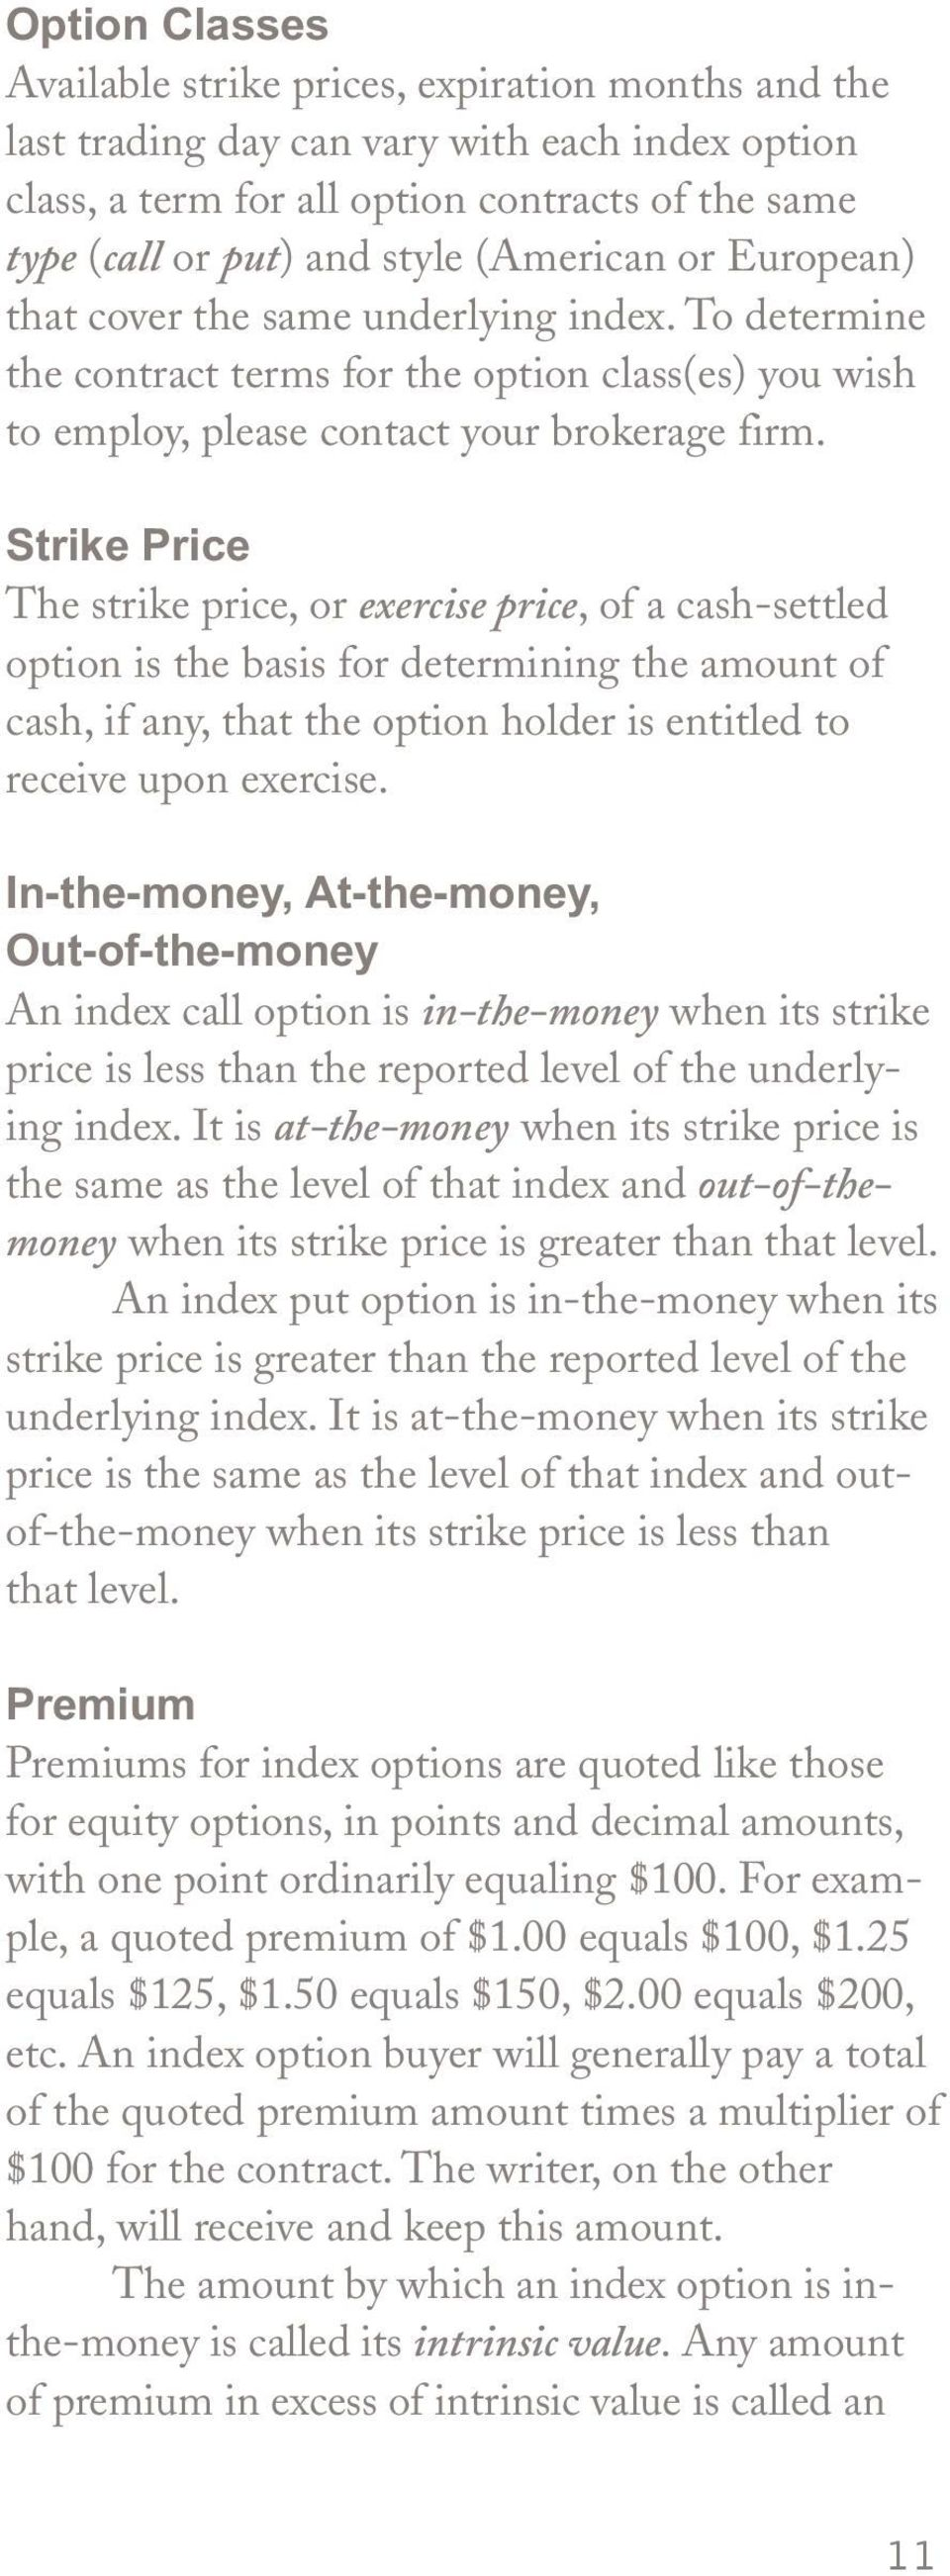 Strike Price The strike price, or exercise price, of a cash-settled option is the basis for determining the amount of cash, if any, that the option holder is entitled to receive upon exercise.